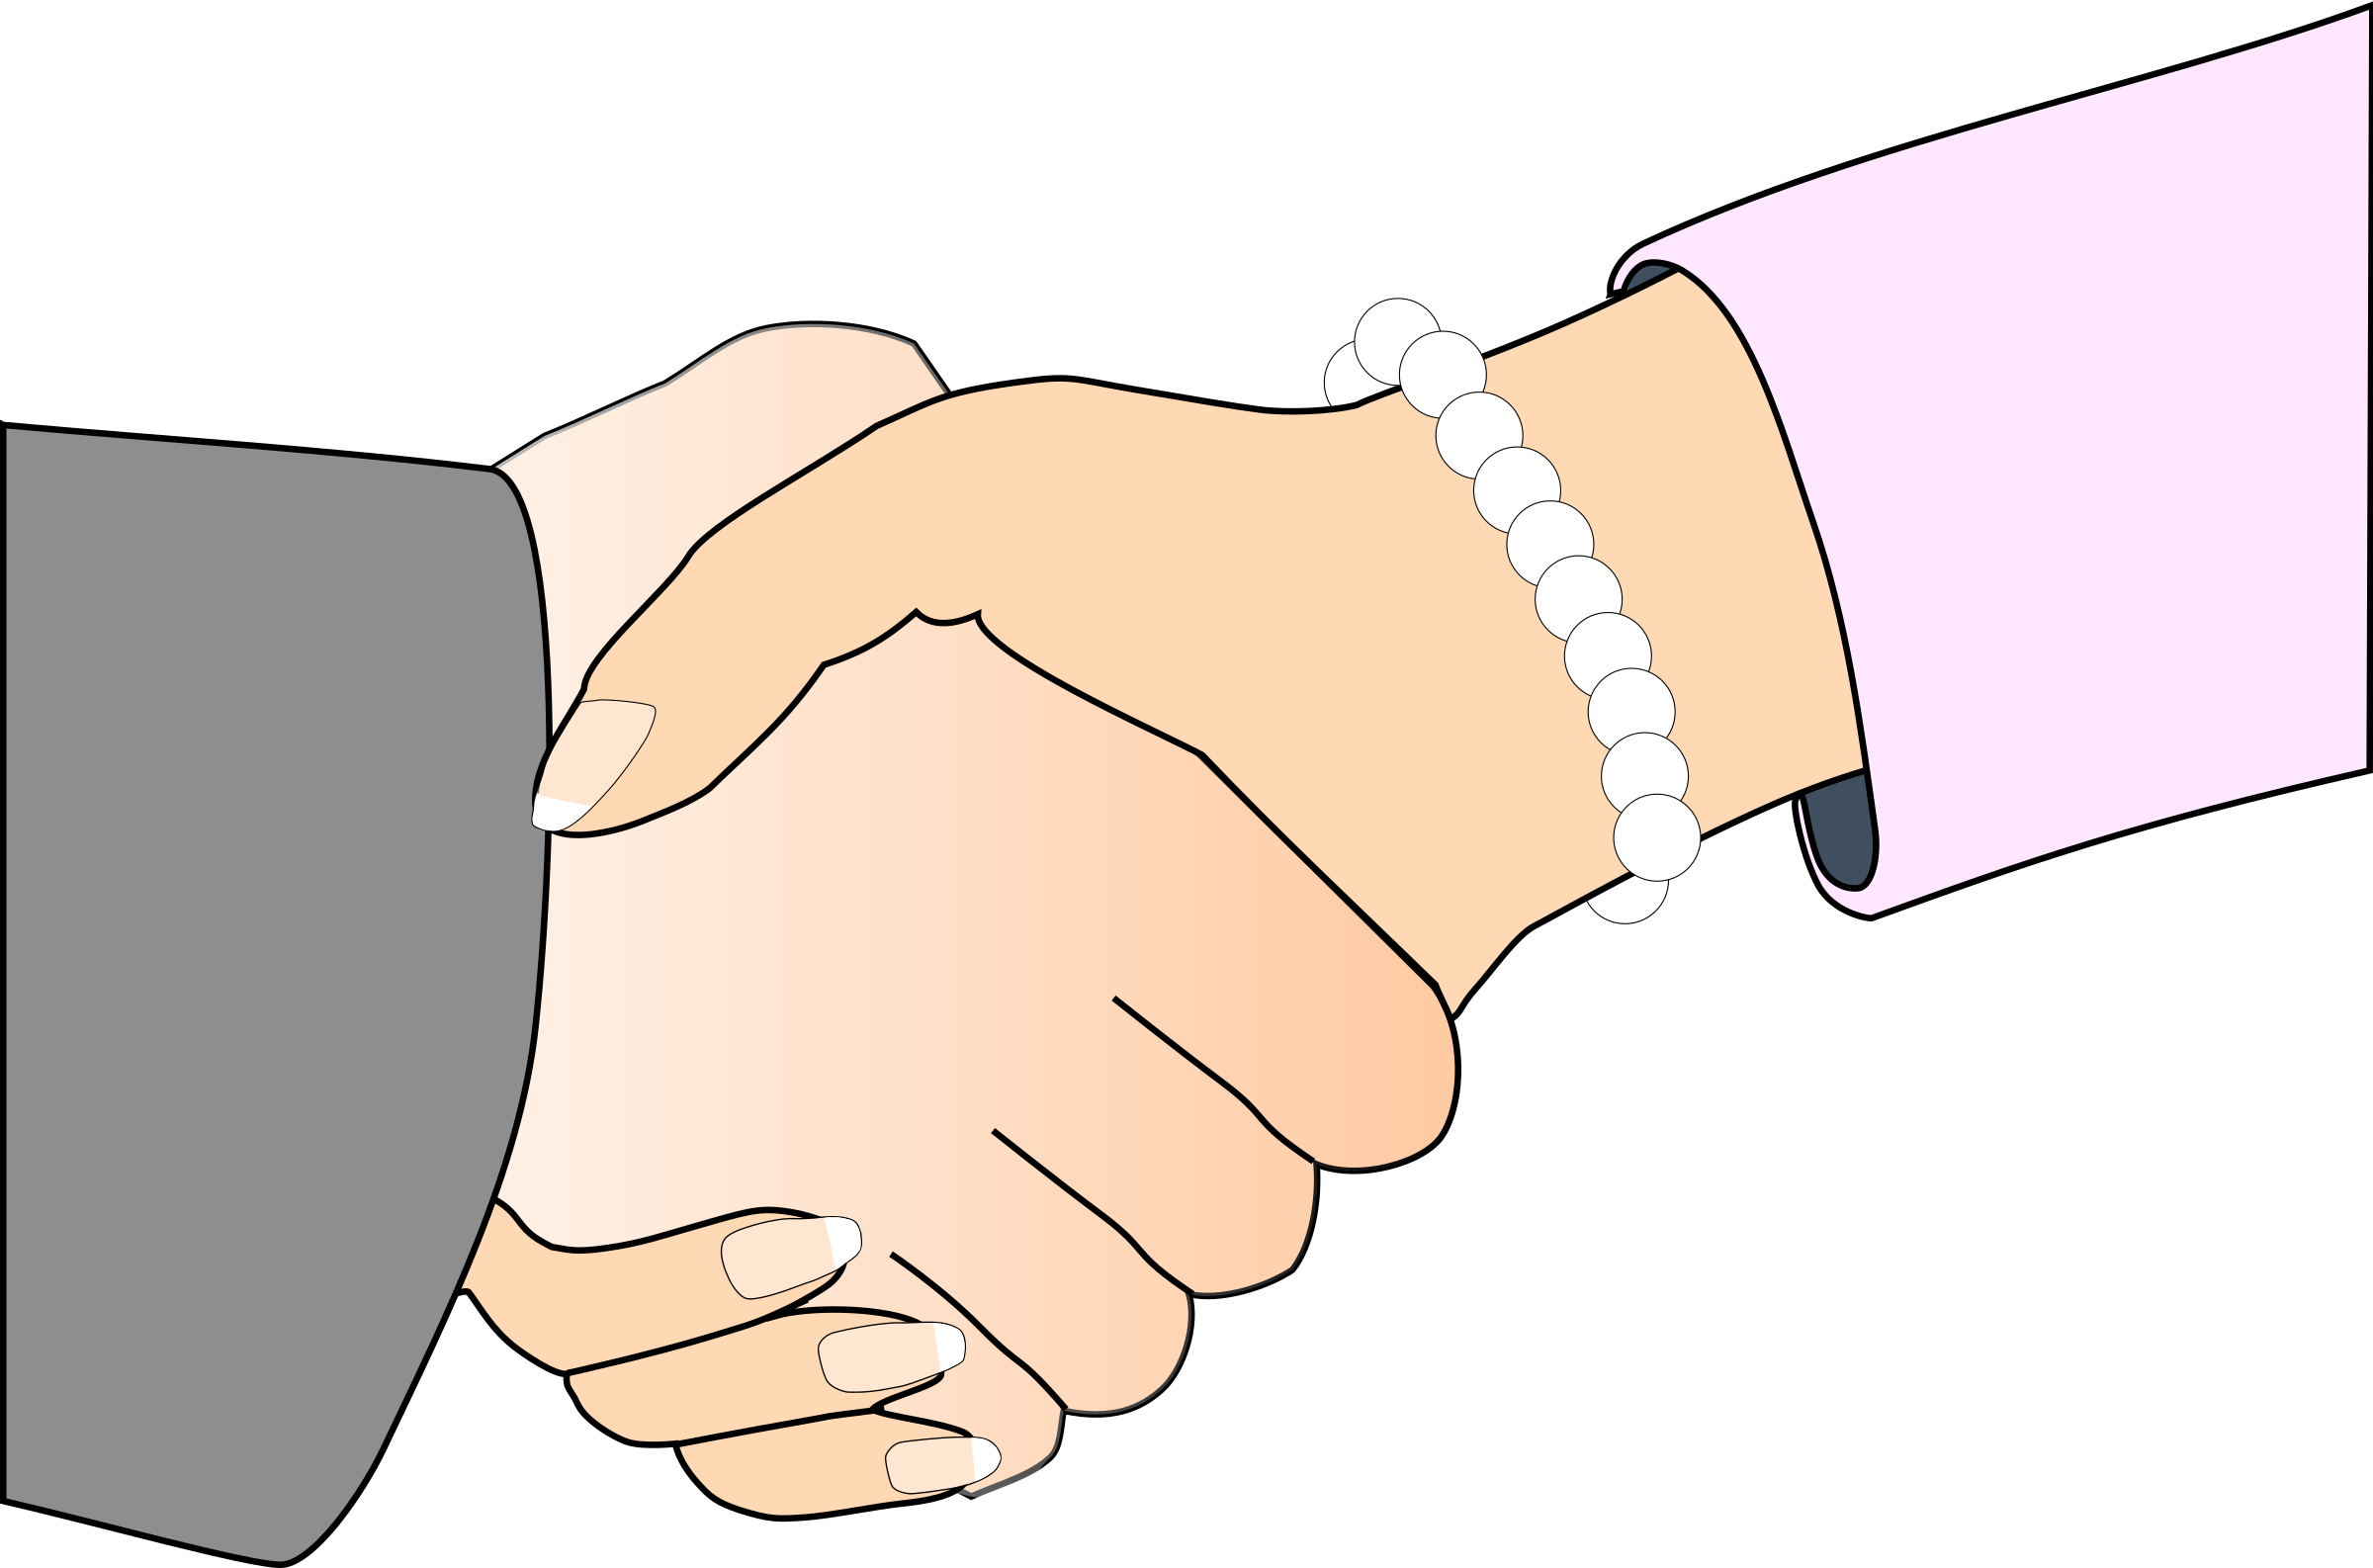 Handshake clipart artistic. Of outline man and